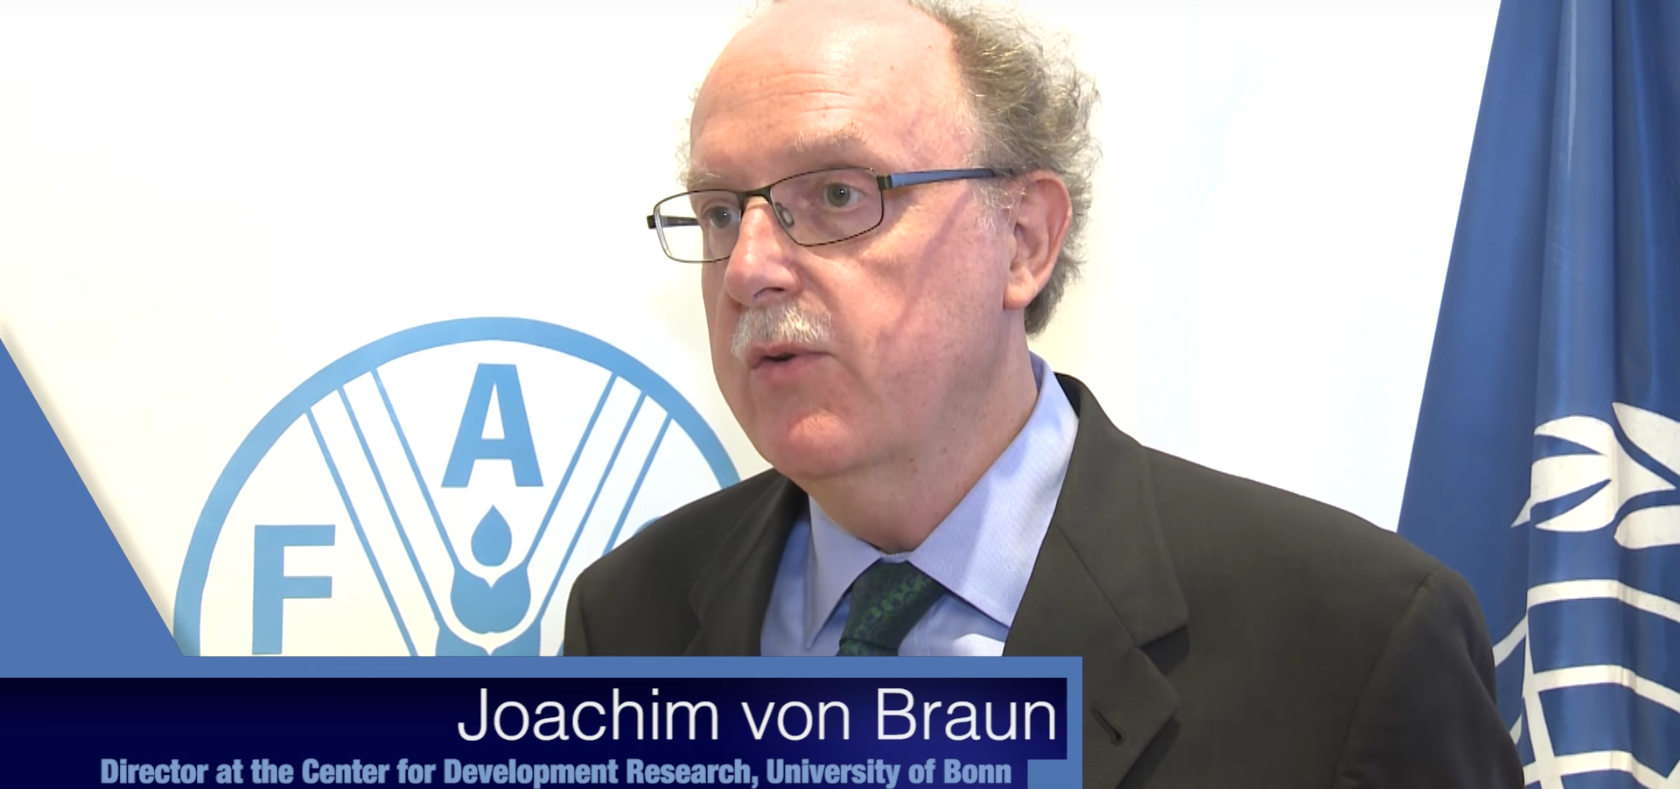 Joachim von Braun: Remarks on his talk with Jacques Diouf, FAO Director-General